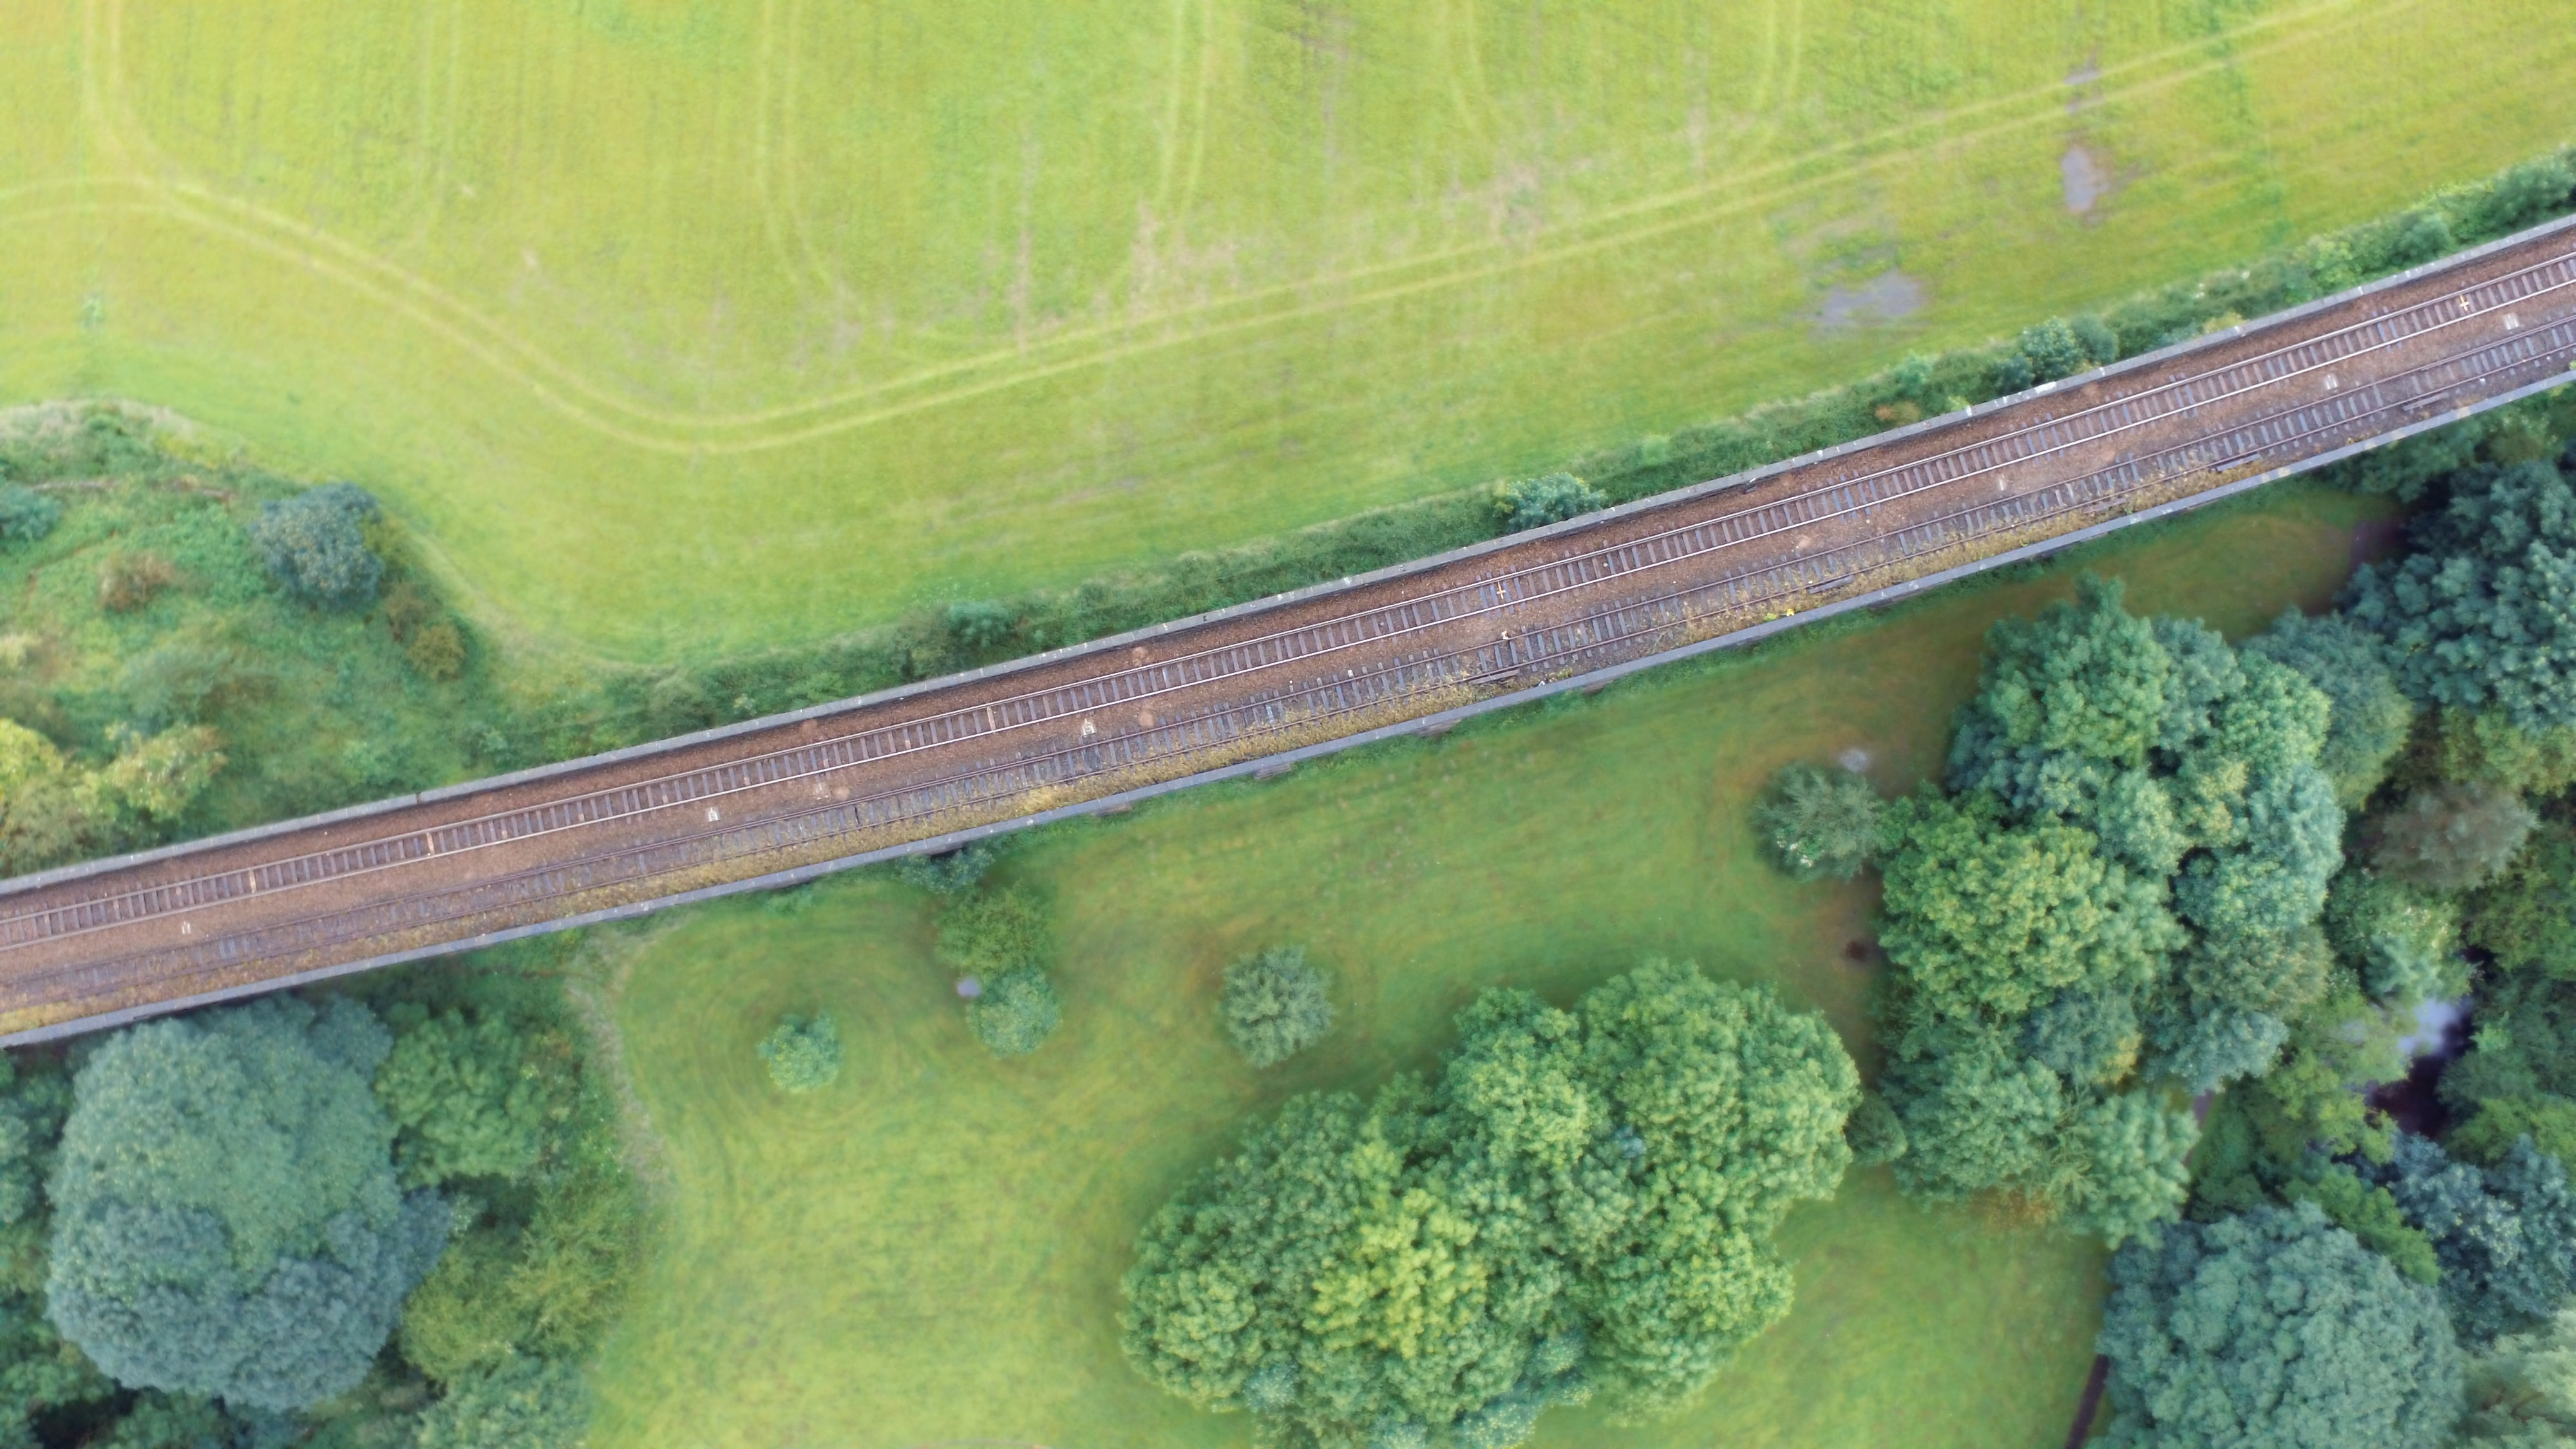 birds eye view of a train rail and trees